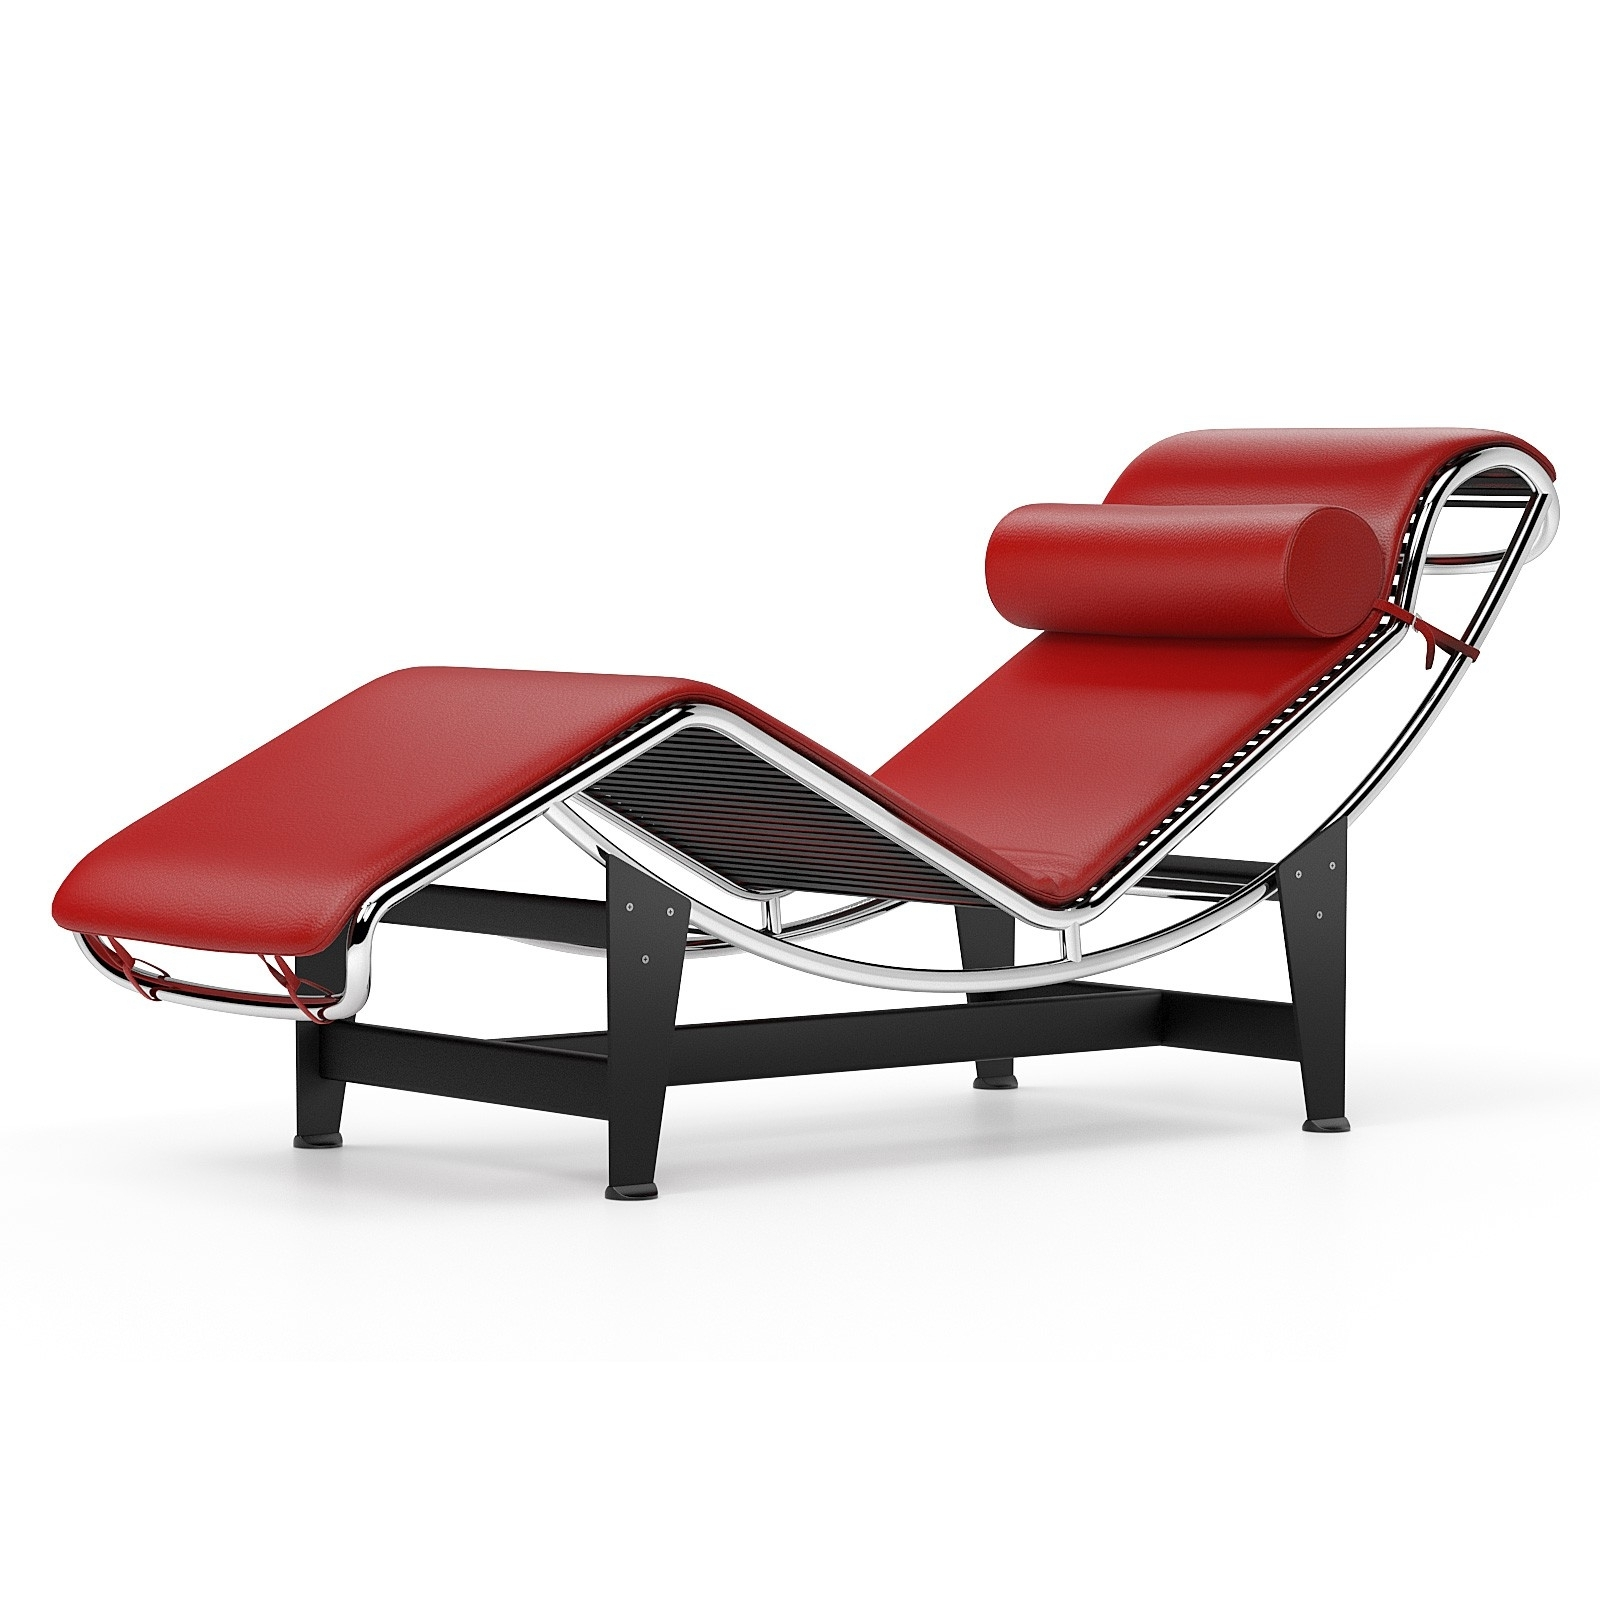 Chaise Longue Le Corbusier Lc4 Chaise Longue Red Throughout Most Up To Date Corbusier Chaises (View 3 of 15)